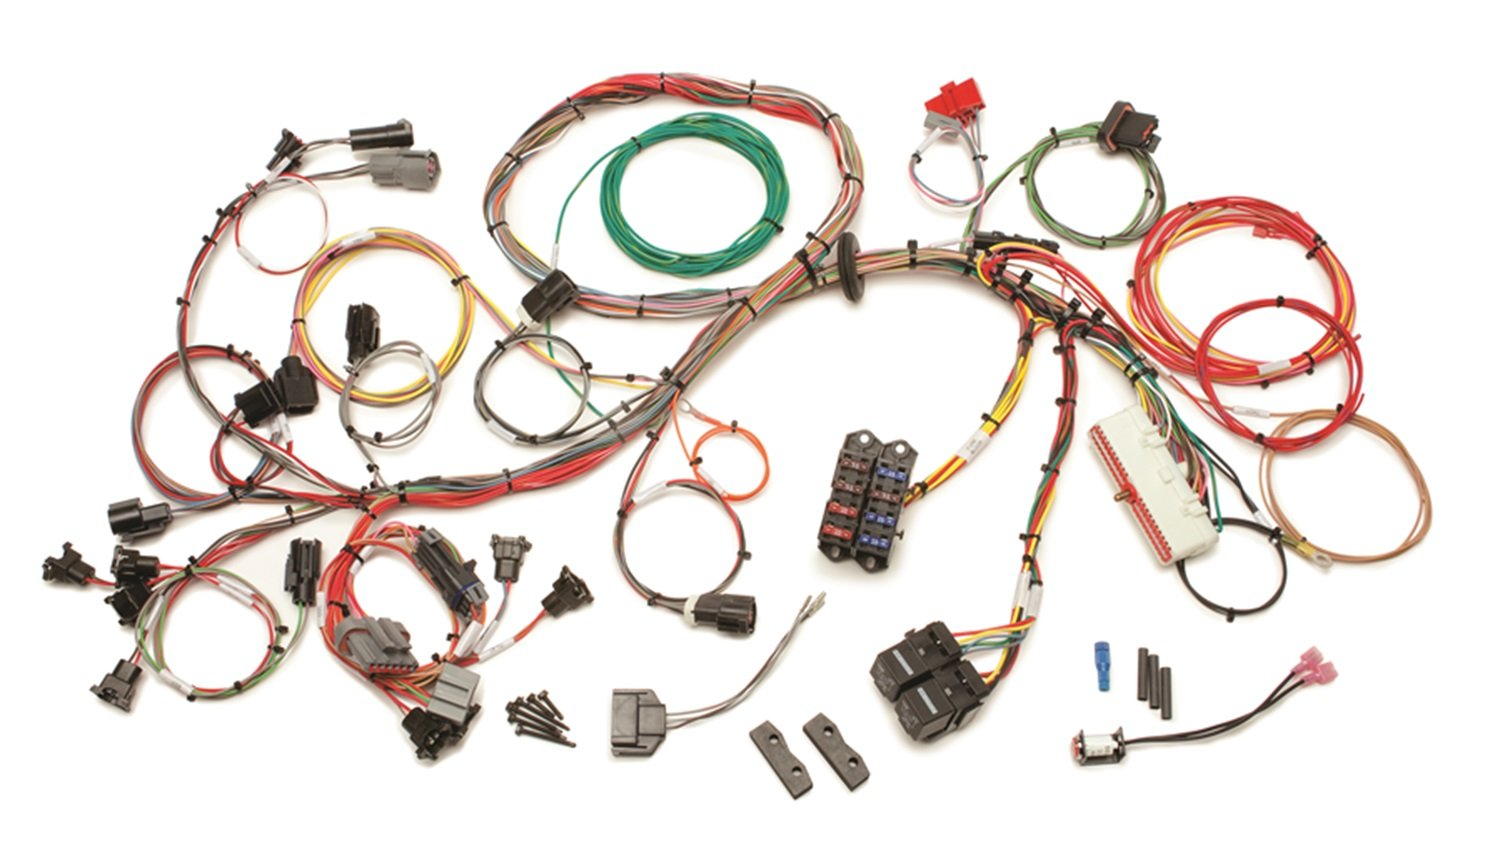 71UX1IBfleL._SL1500_ amazon com painless 60510 5 0l wiring harness automotive painless wiring harness at fashall.co